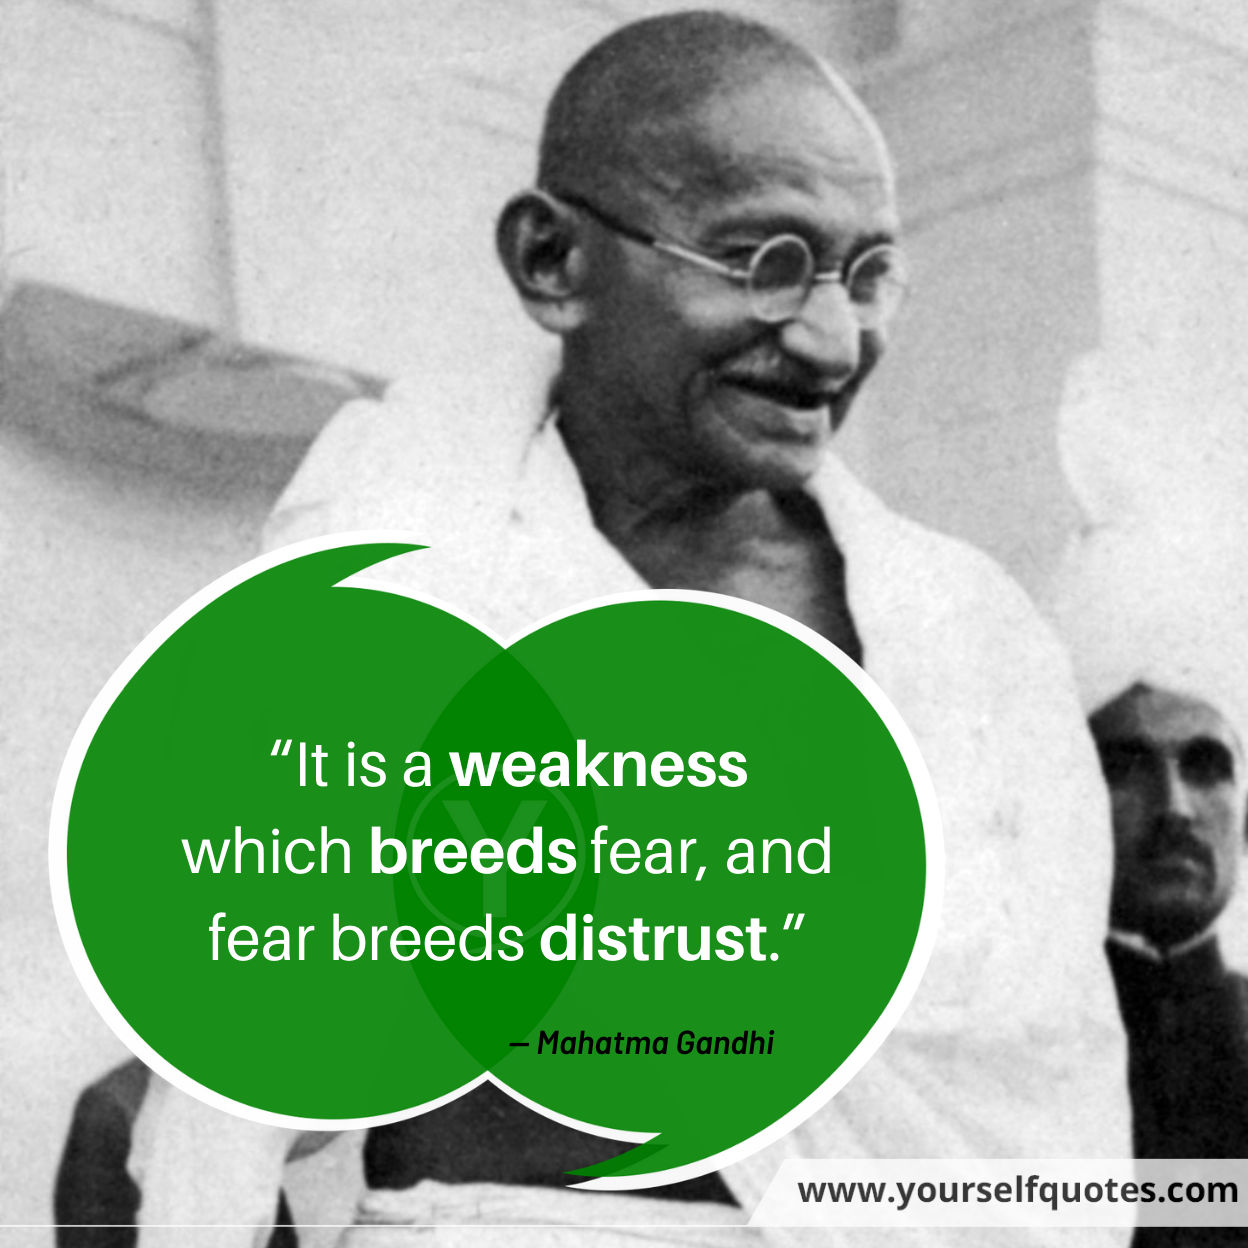 Quotes By Mahatma Gandhi On Education